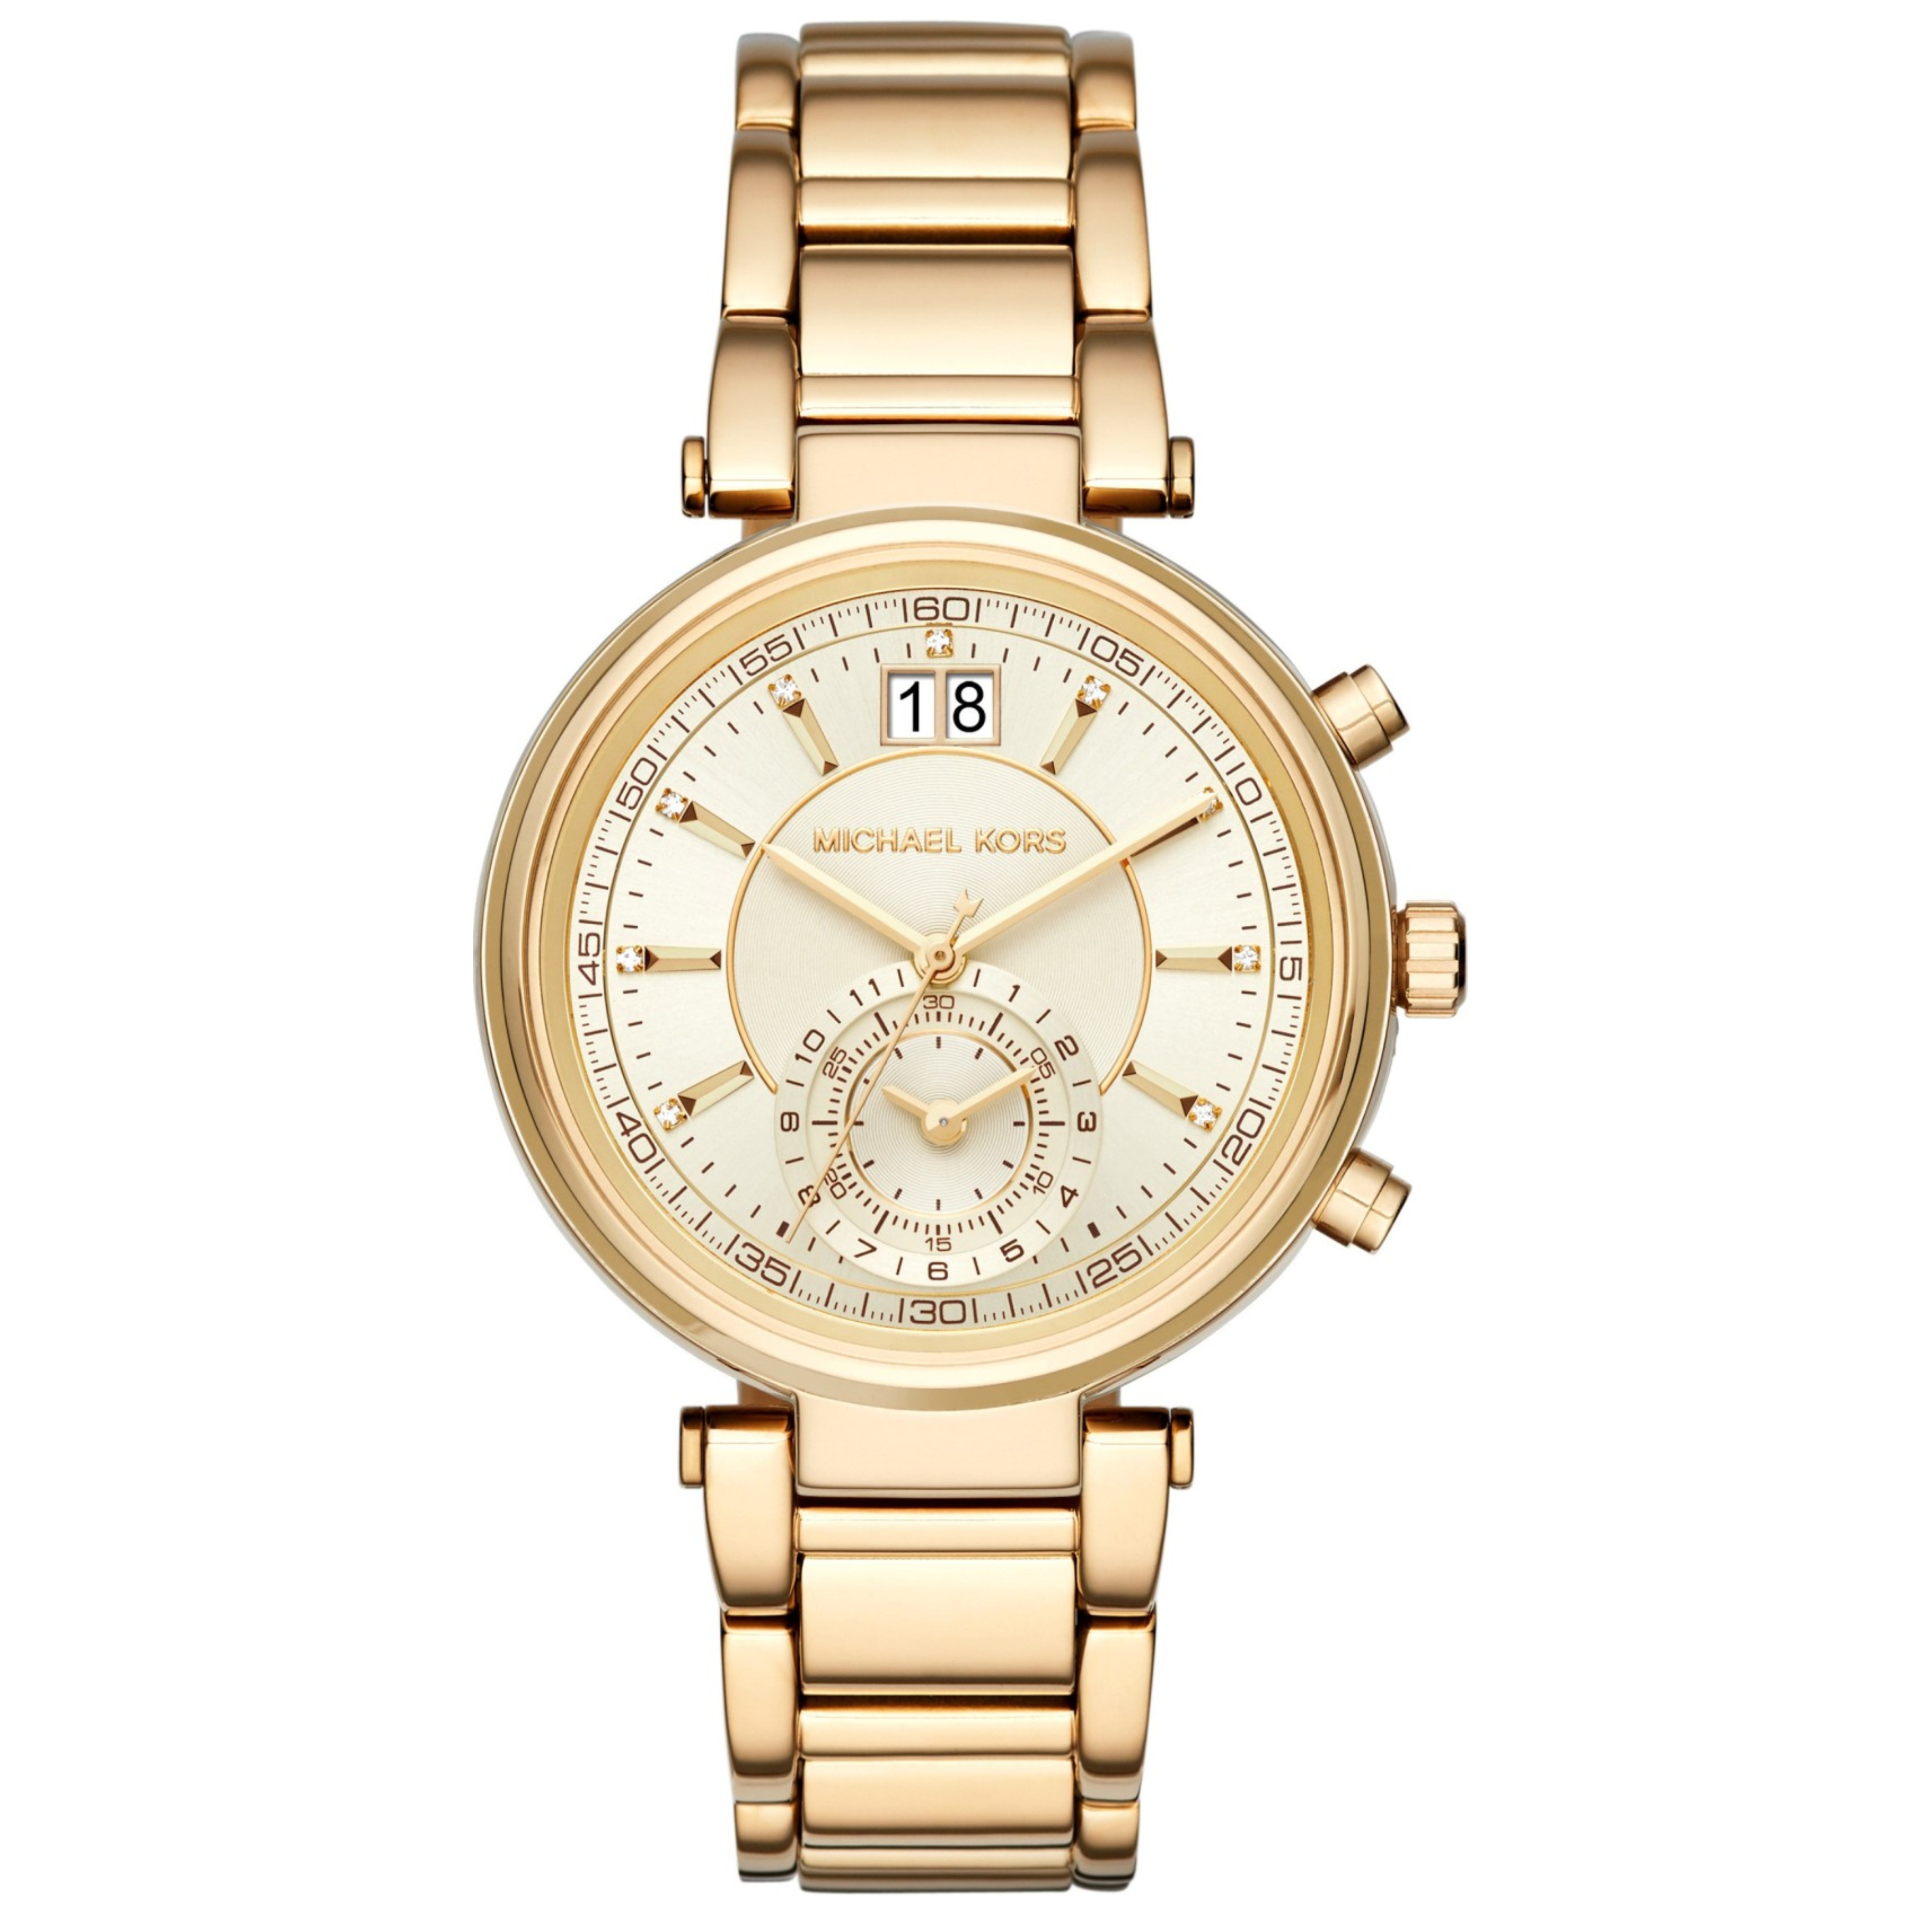 Michael Kors Sawyer Ladies Watch | Chronograph Gold Dial | Stainless Strap | MK6362